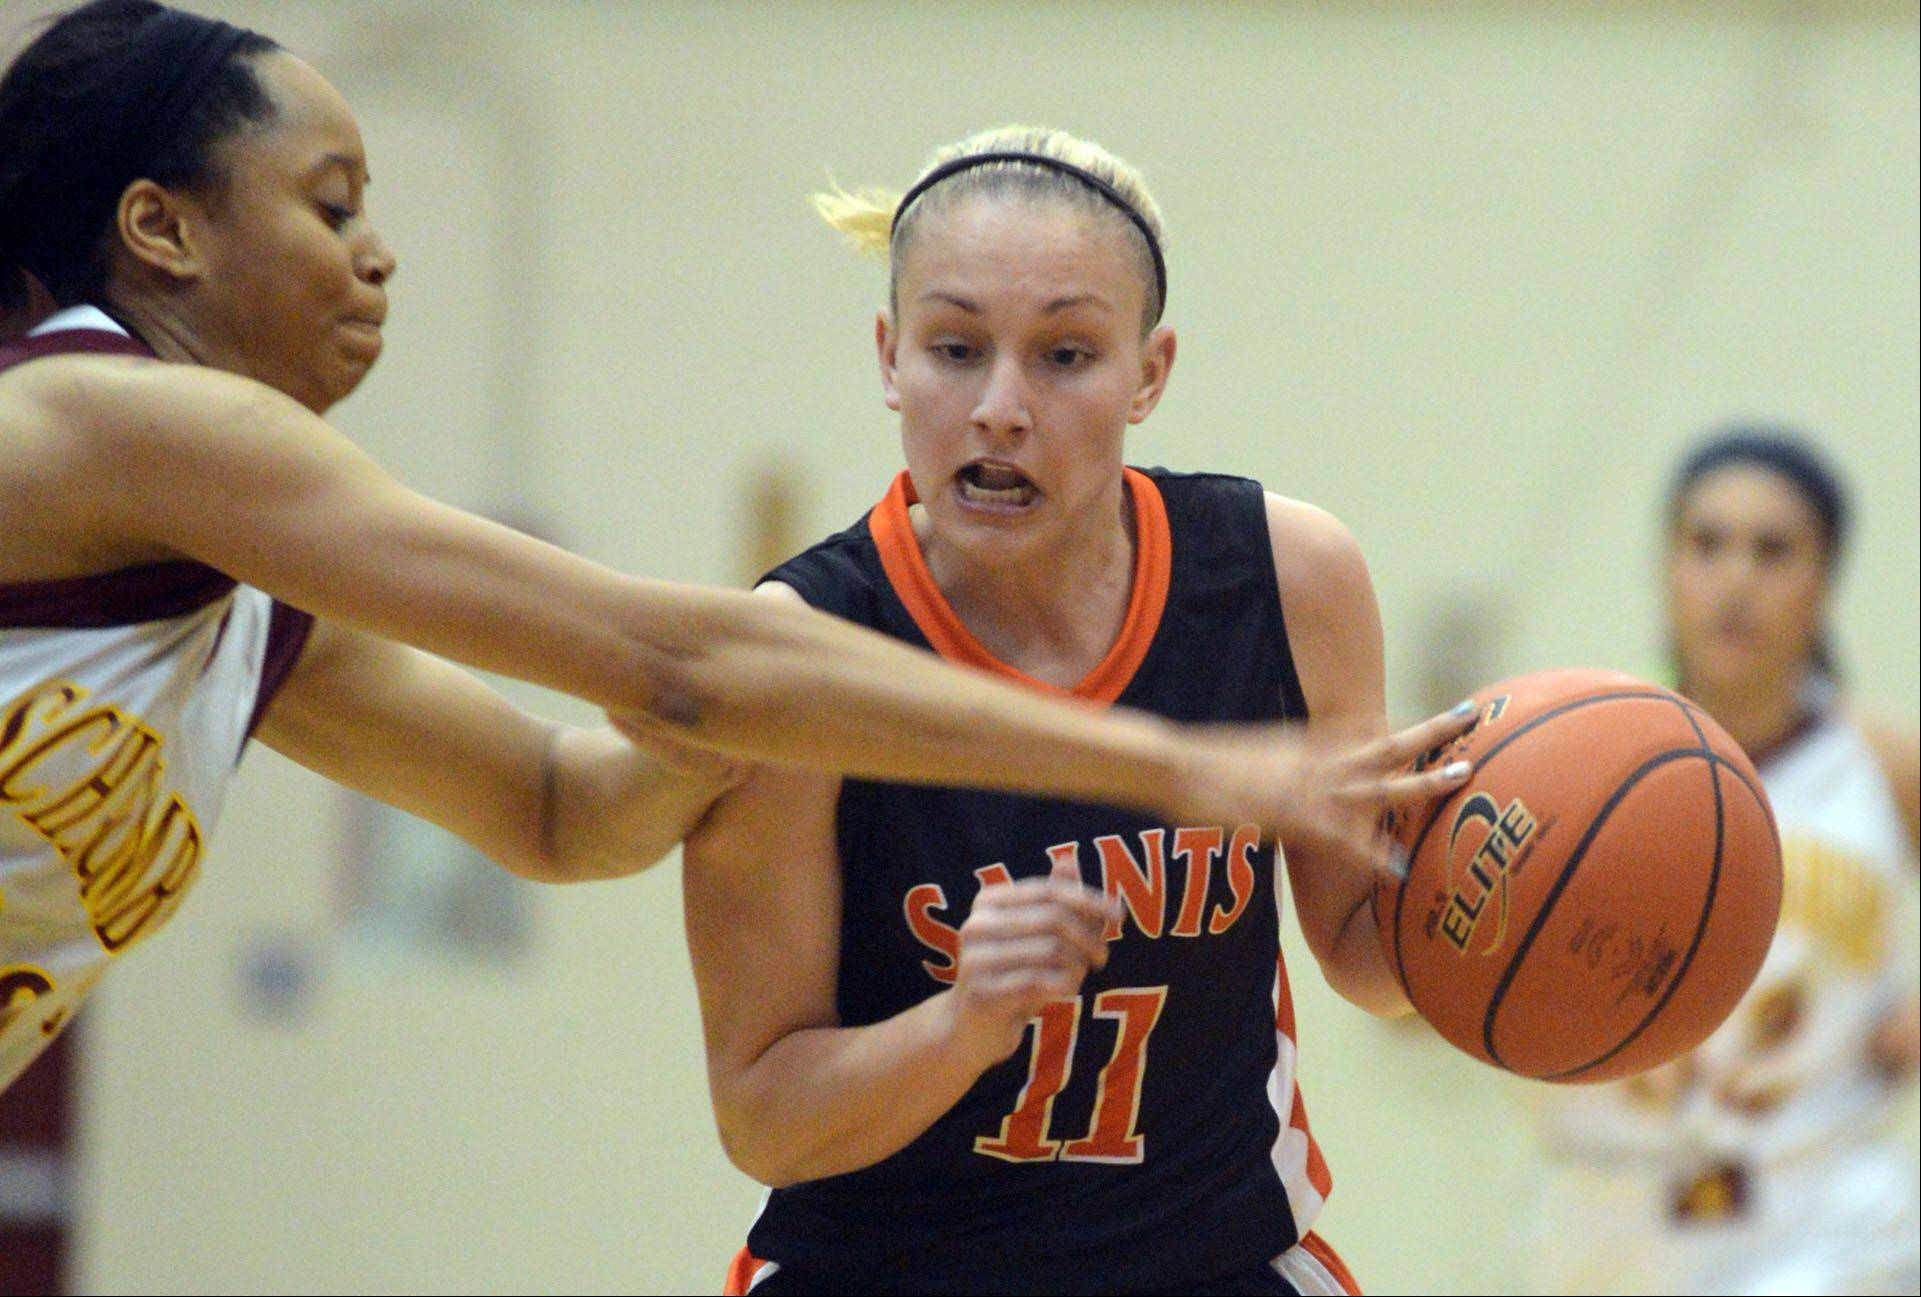 St. Charles East's Katelyn Claussner, right, tries to get past Schaumburg's Jada Blackwell Monday's basketball game in Schaumburg.